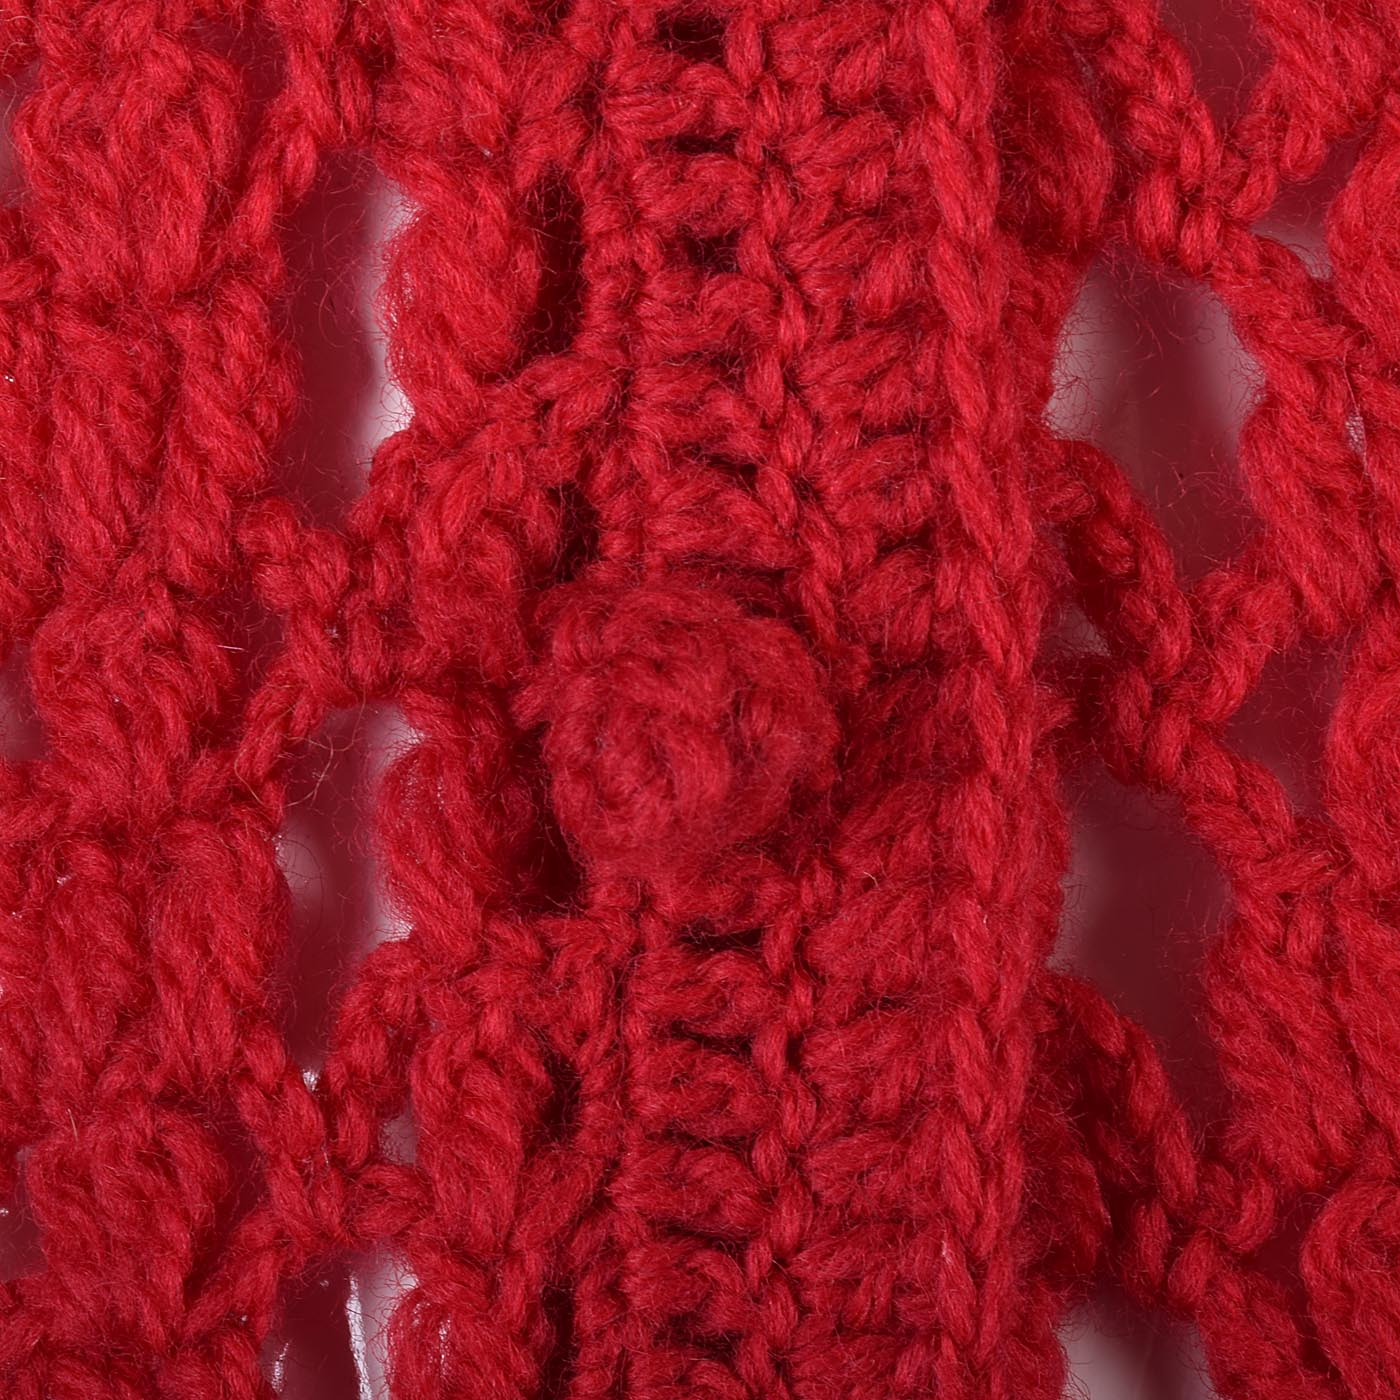 1950s Vibrant Red Open Crochet Cardigan